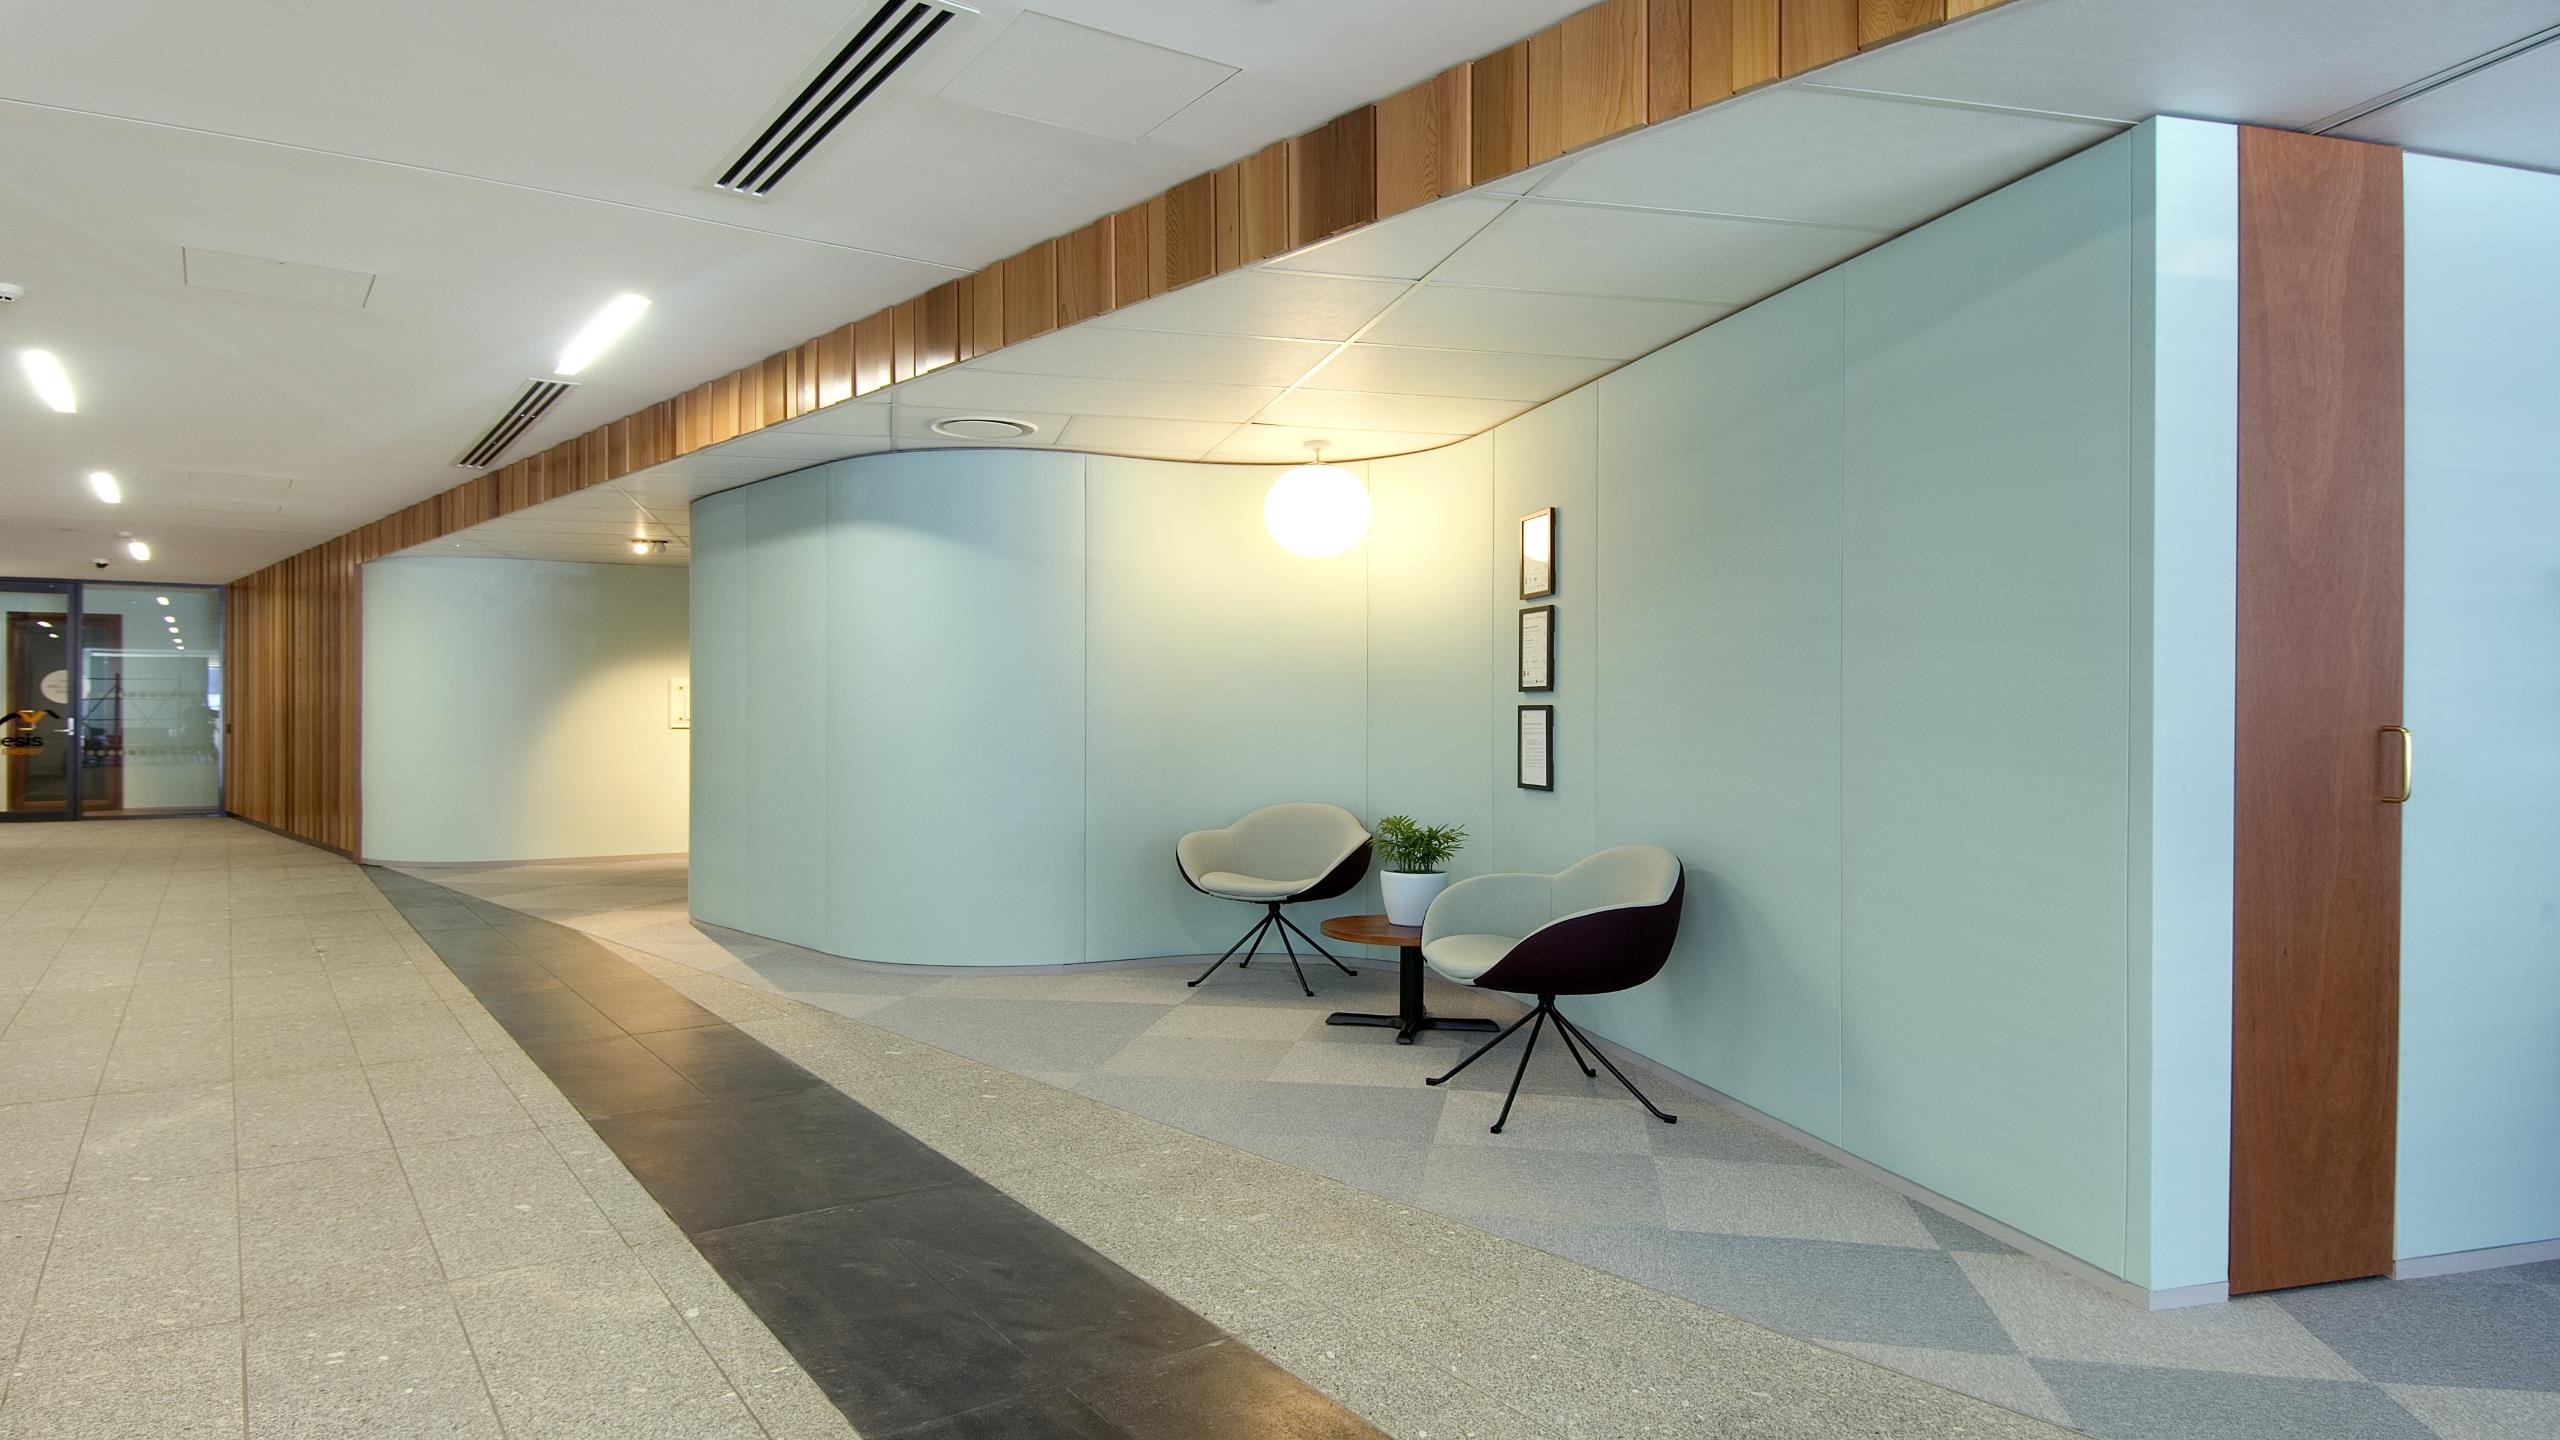 Genesis HQ showing Snaptex installed to flowing curved walls in aqua digitally printed fabric